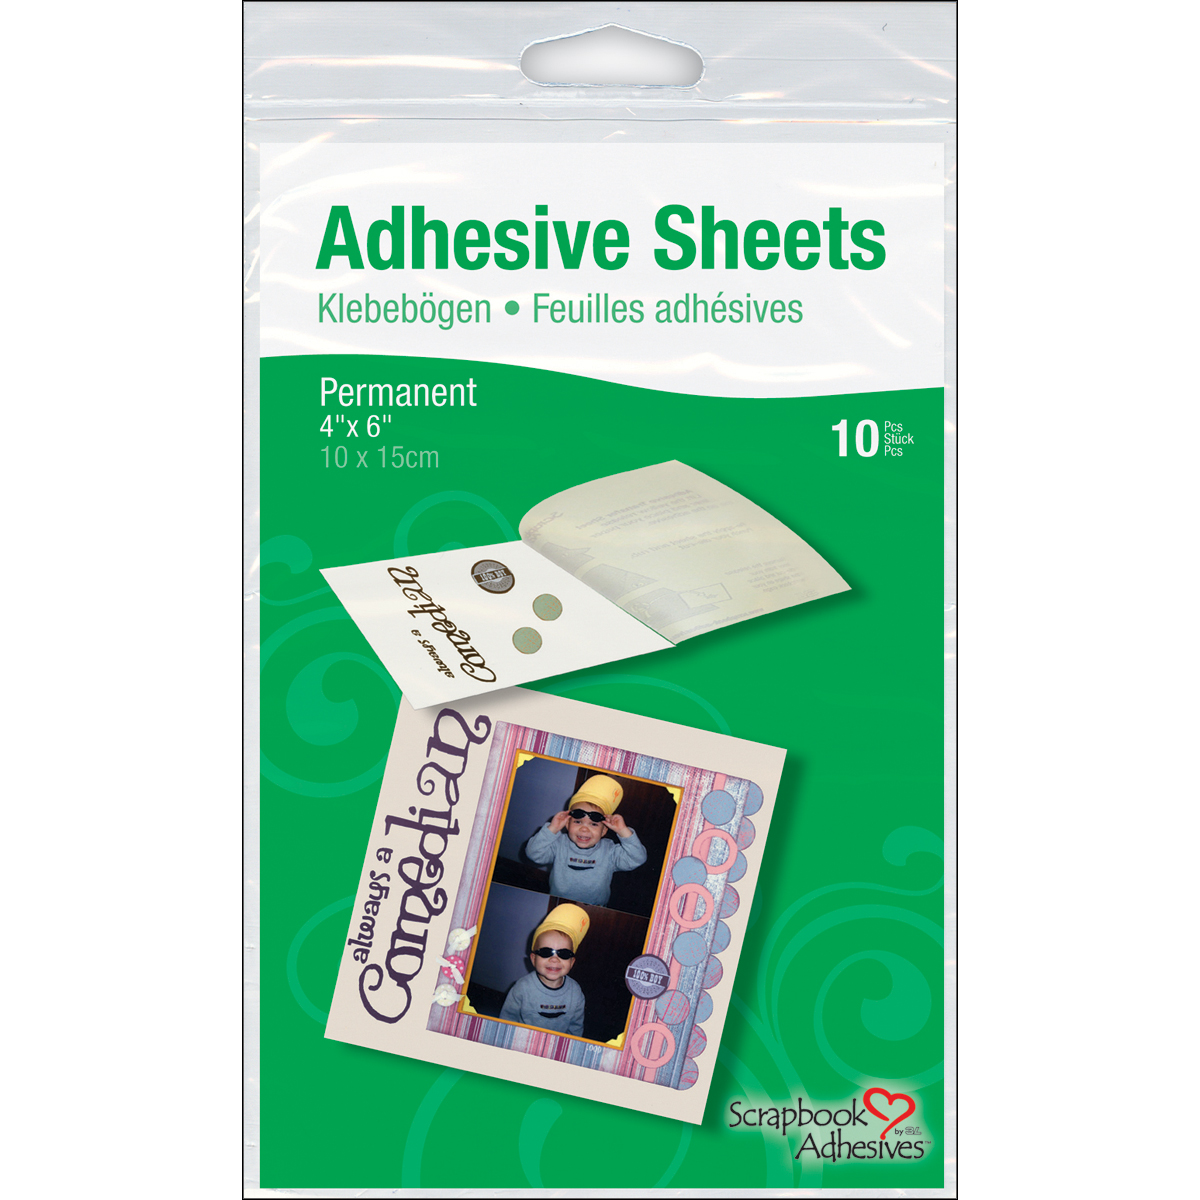 3L 3-15/16 Inch by 5-7/8 Inch Adhesive Permanent Transfer Sheets Multi-Colored